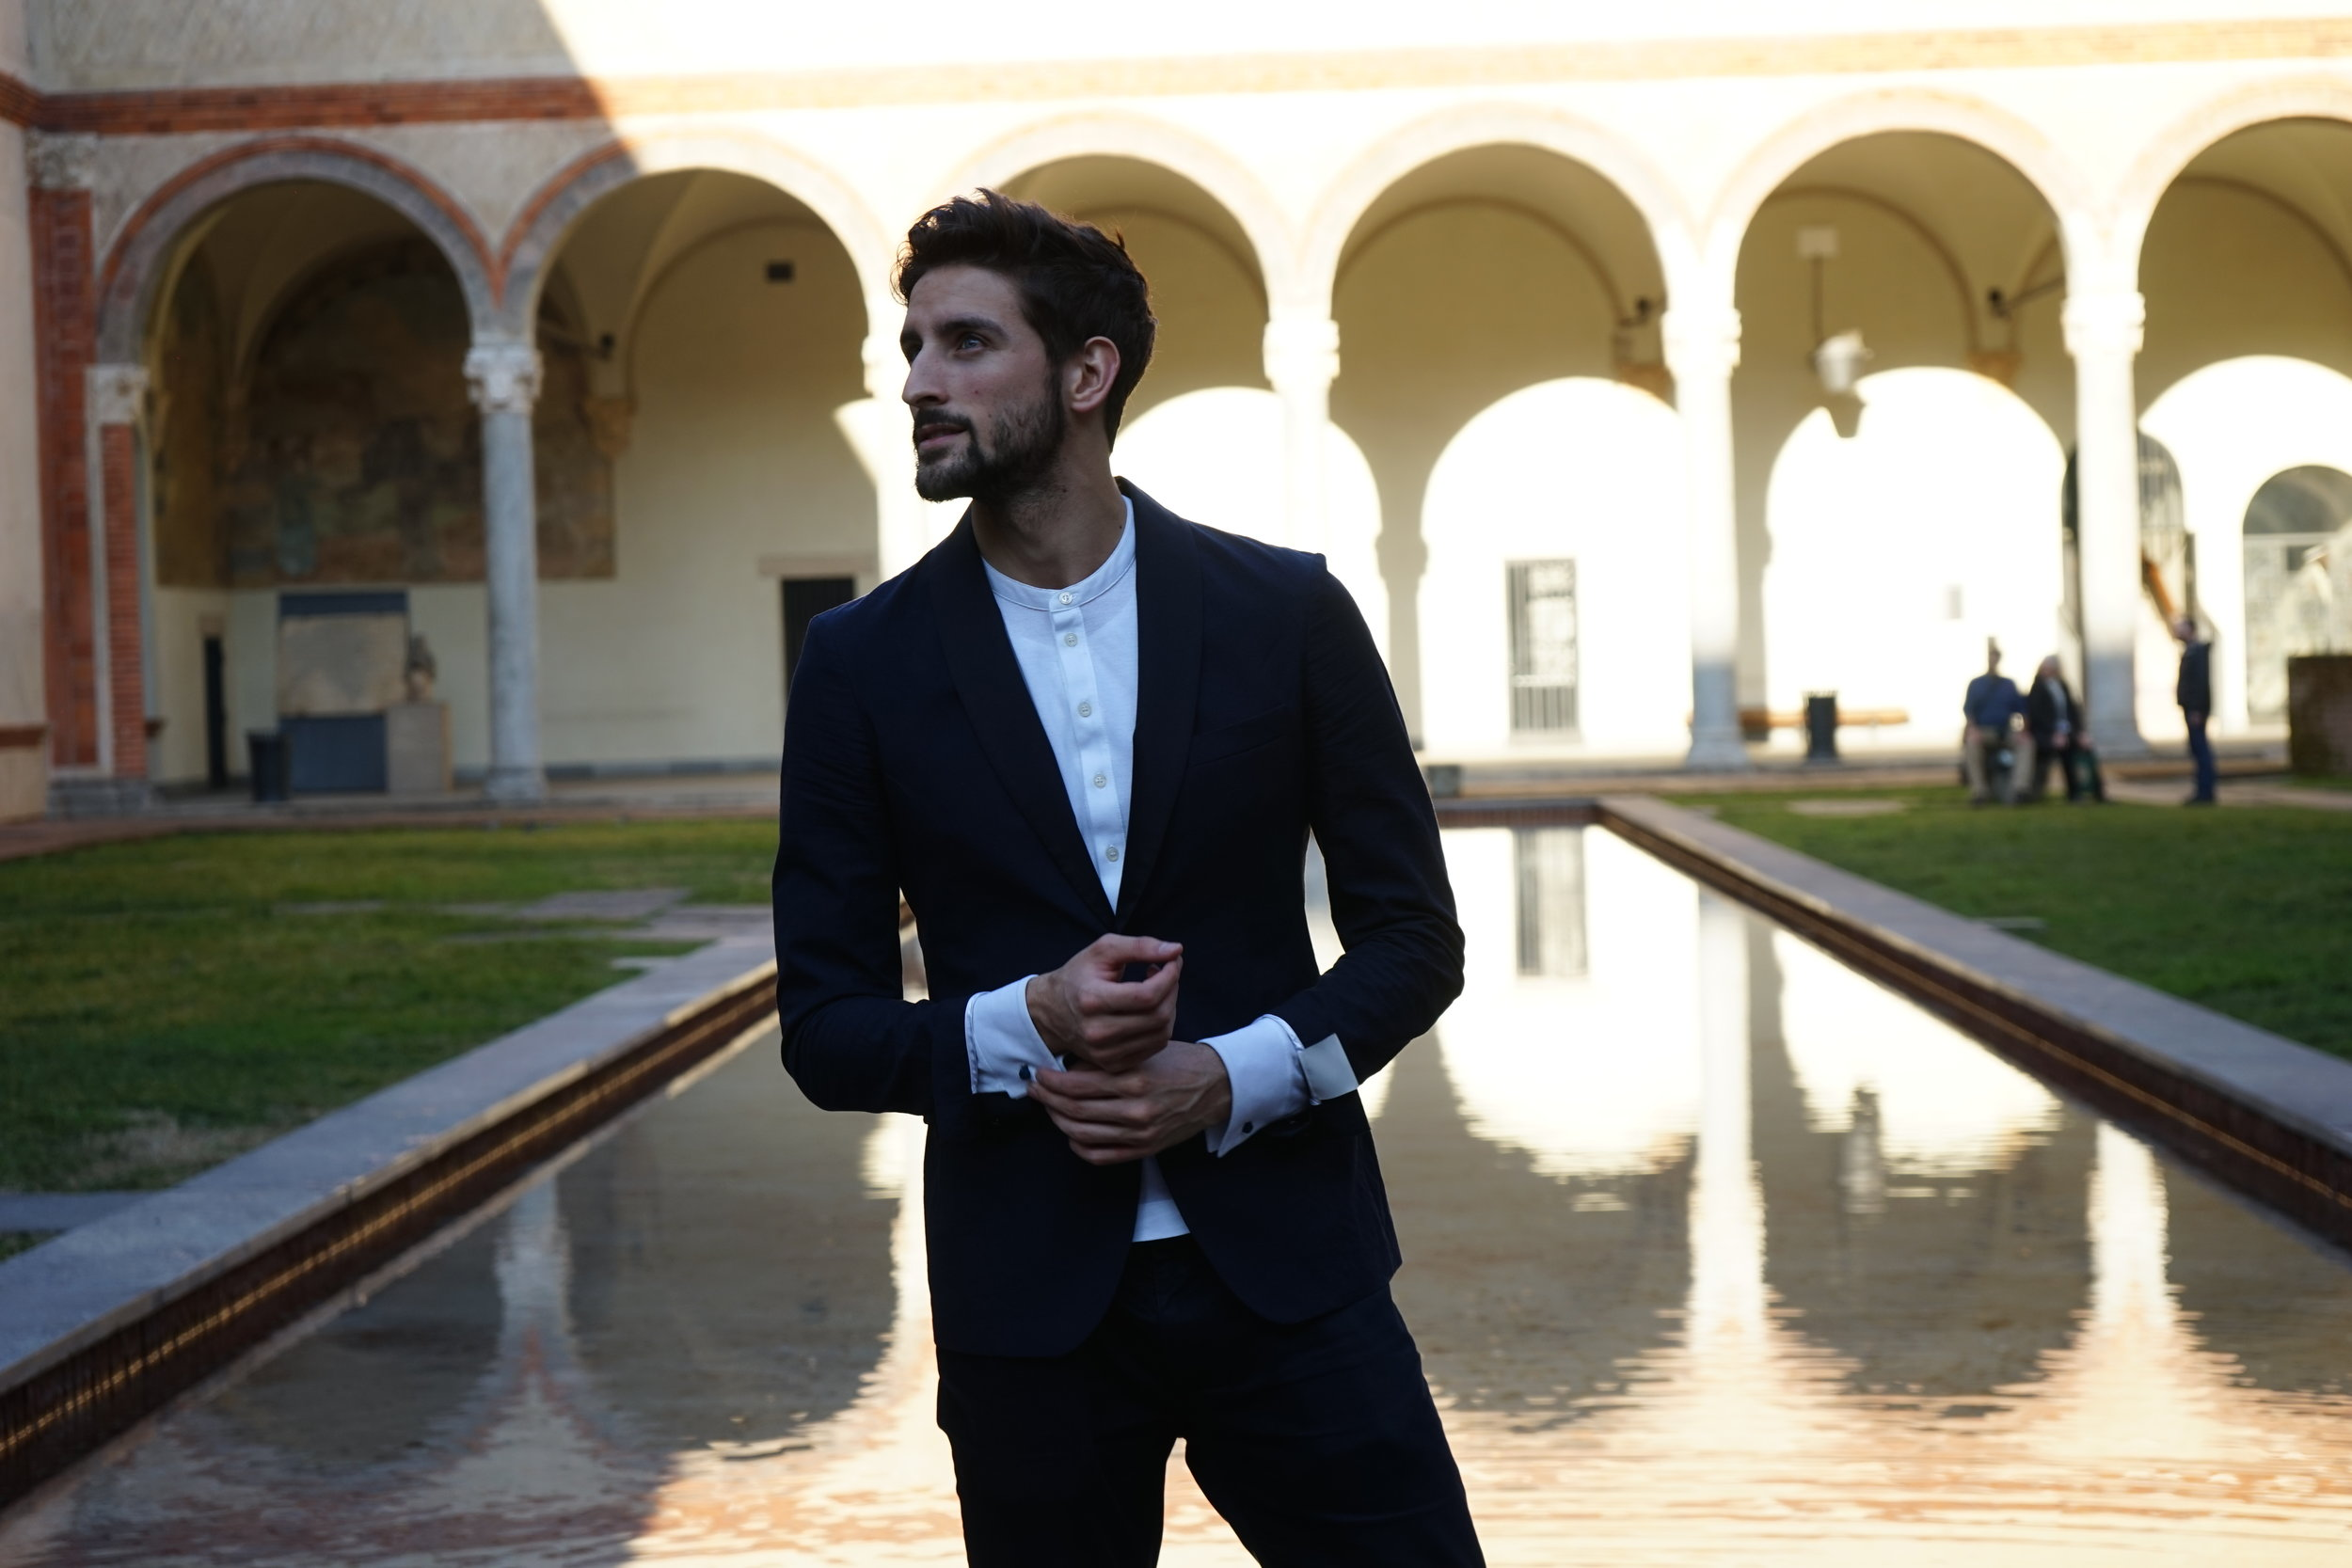 Castello in Suit Milano With Mr Salvatore David Lundin Topmodel Sverige Italy-1.jpg